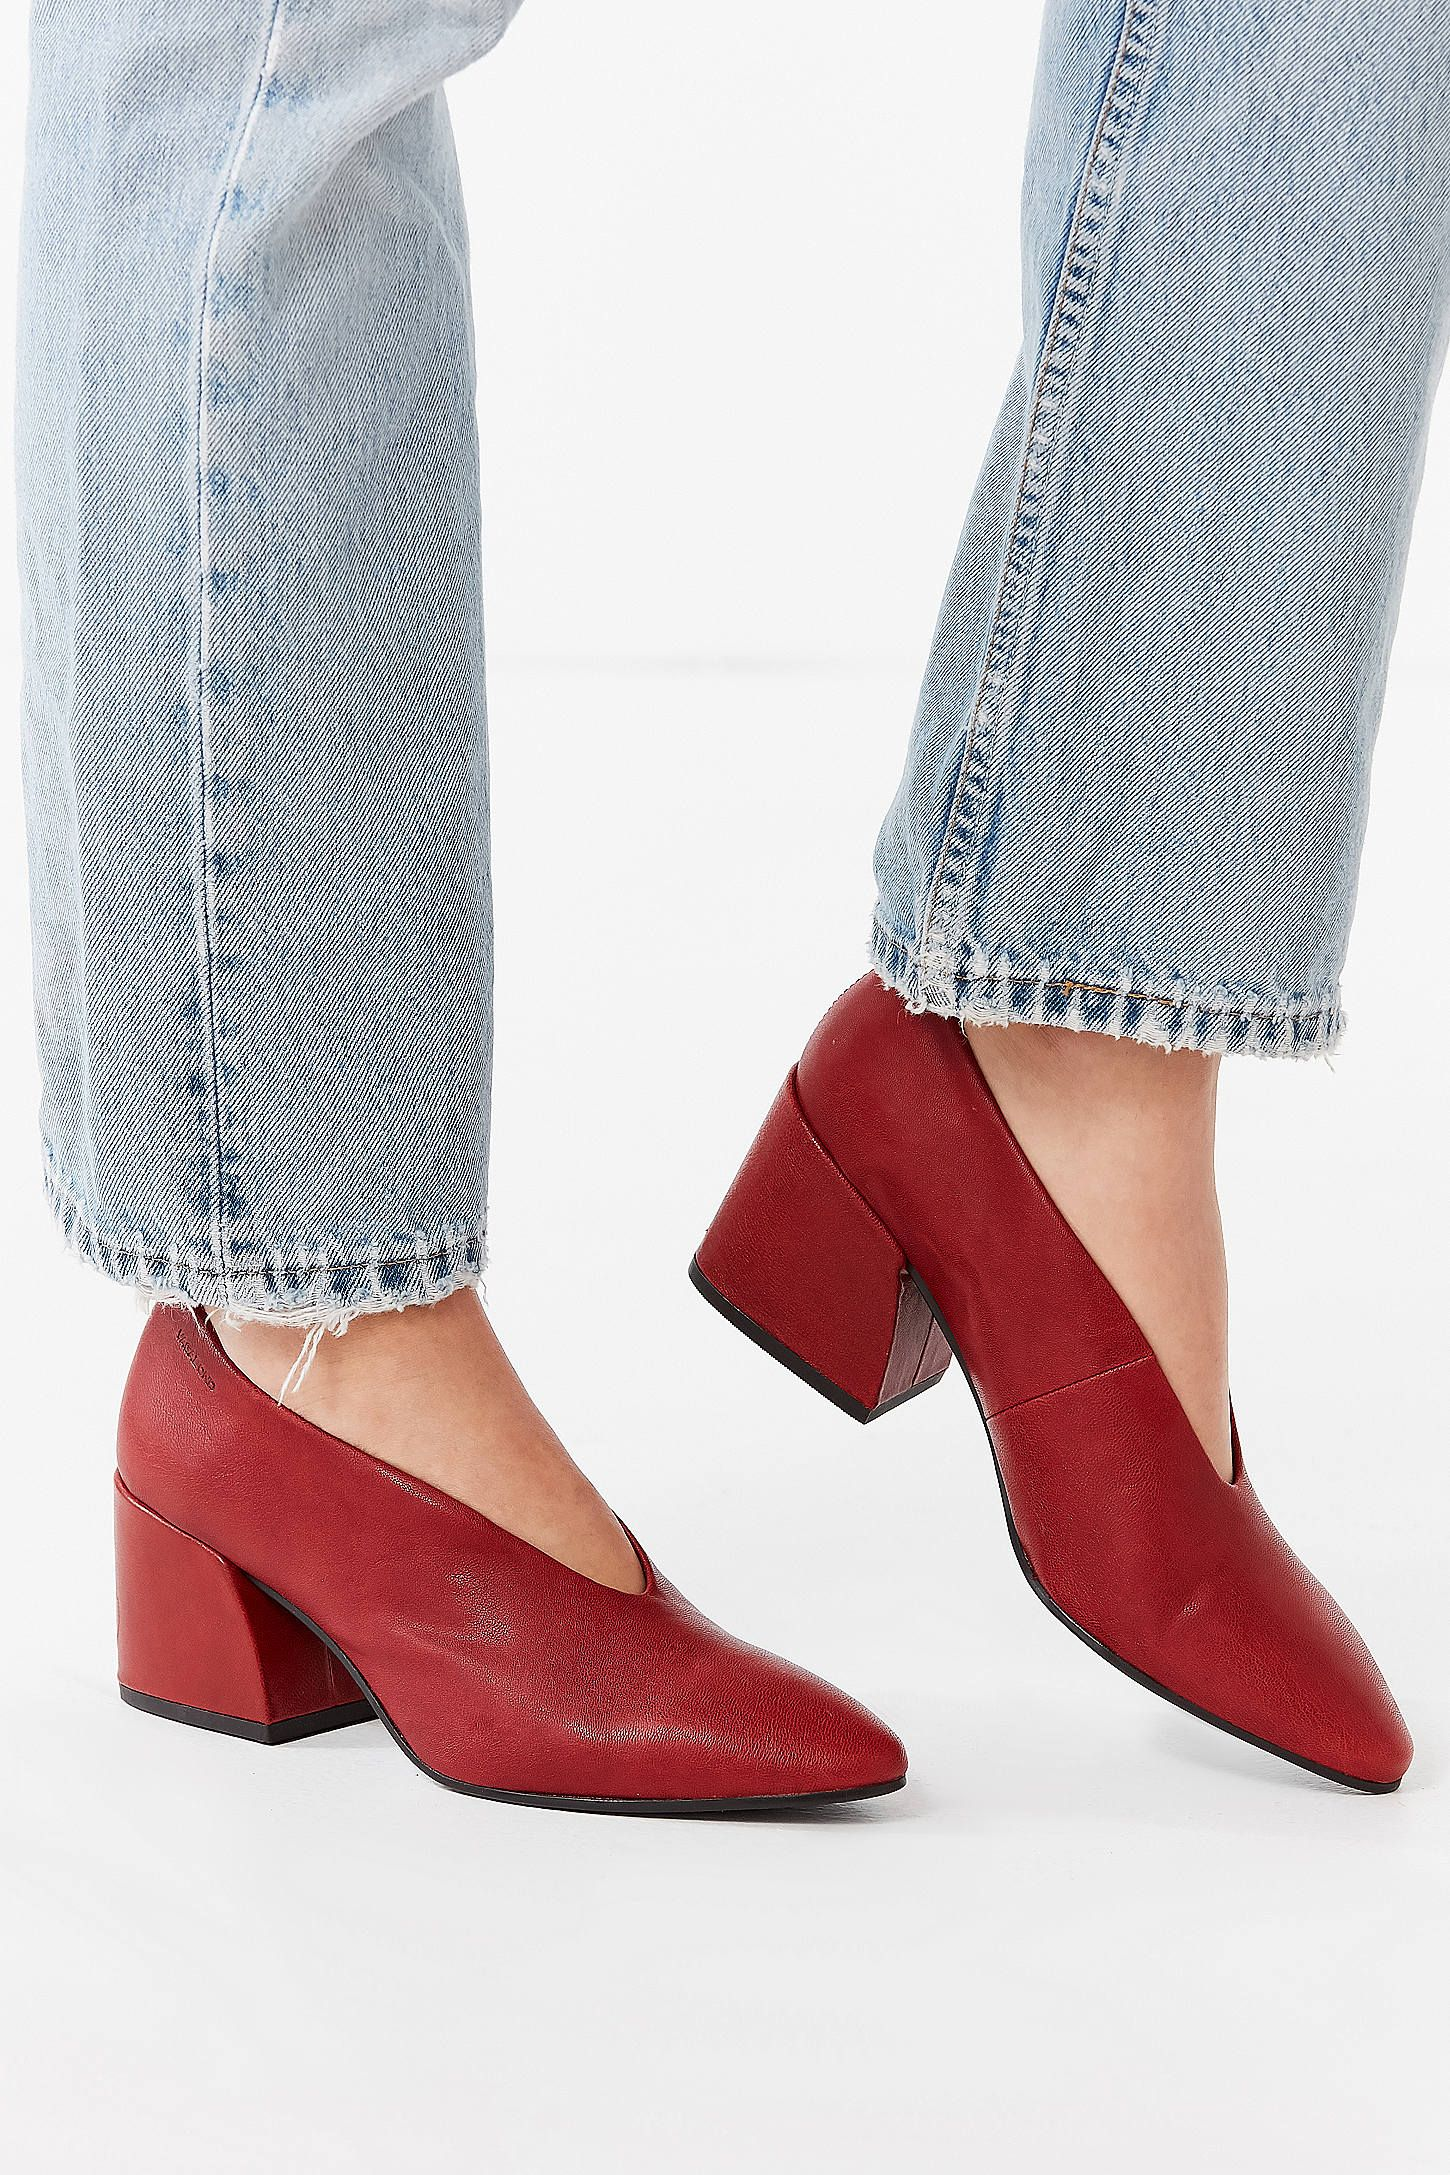 2b33d576af8 Shop Vagabond Olivia Red Leather Heel at Urban Outfitters today. We carry  all the latest styles